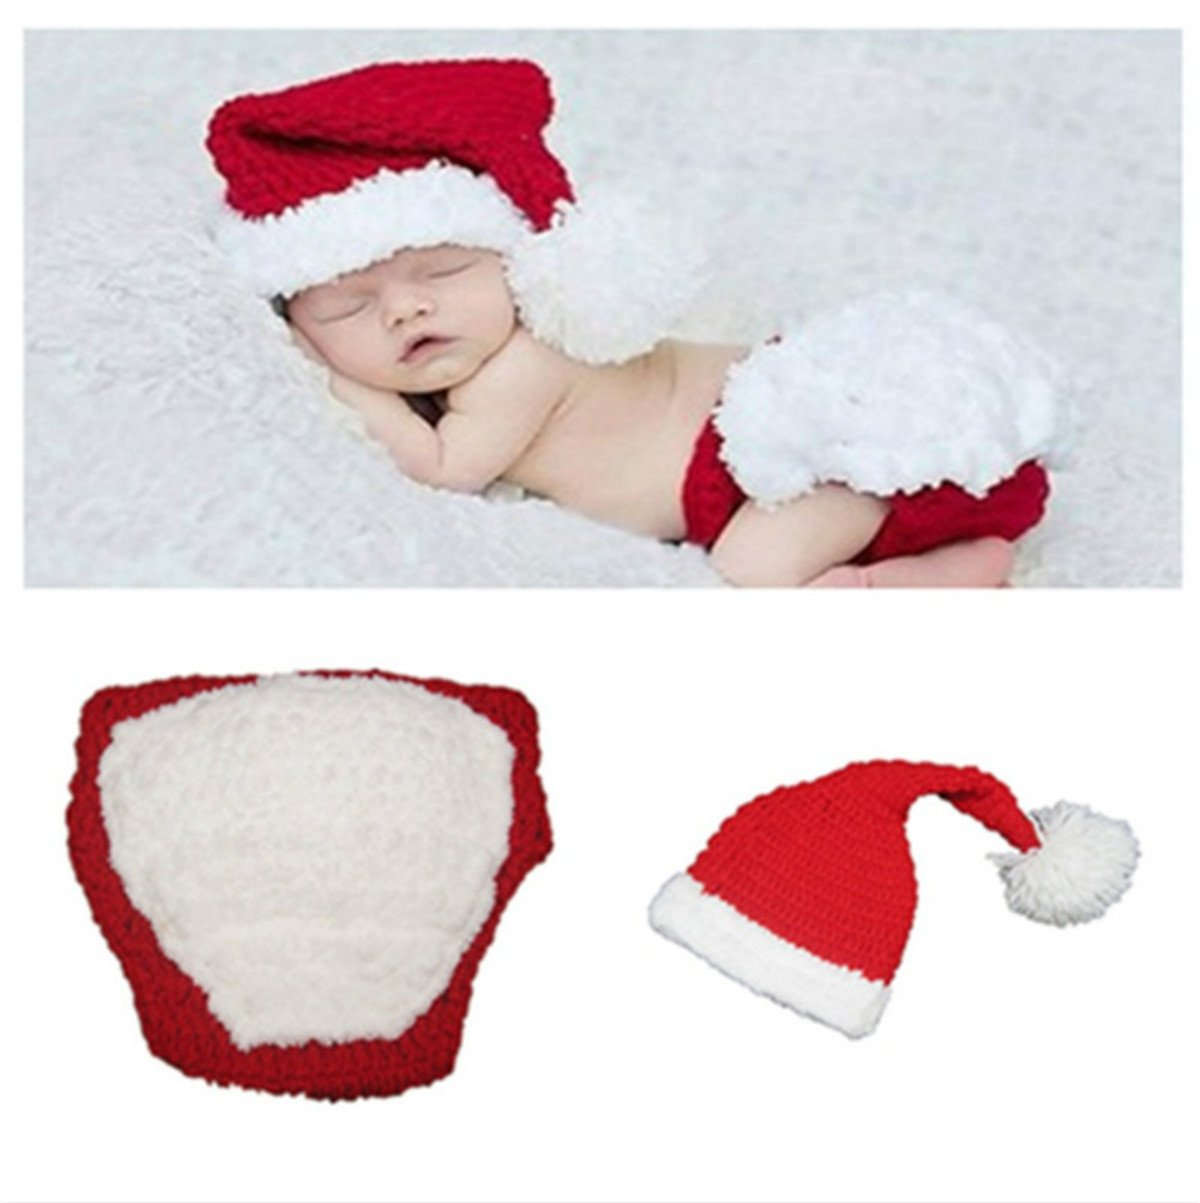 0a9a8e59995 Amazon.com  Newborn Photography Props Christmas Hand Knitting Baby Girl Boy  Elf Hat Pants Outfit Set  Baby